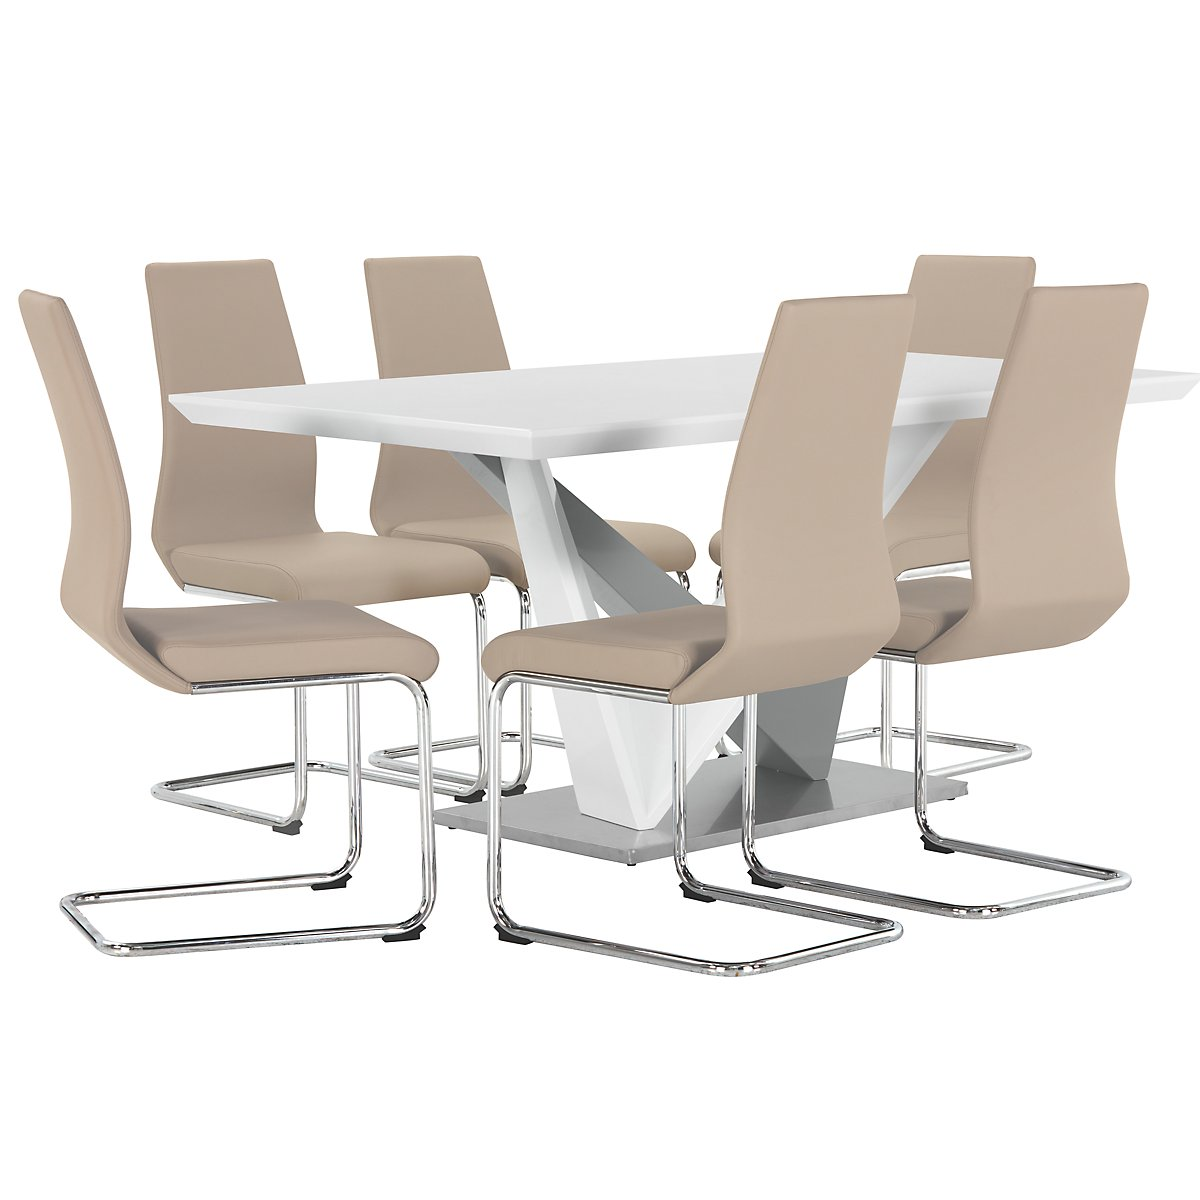 Lennox Taupe Wood Table & 4 Upholstered Chairs